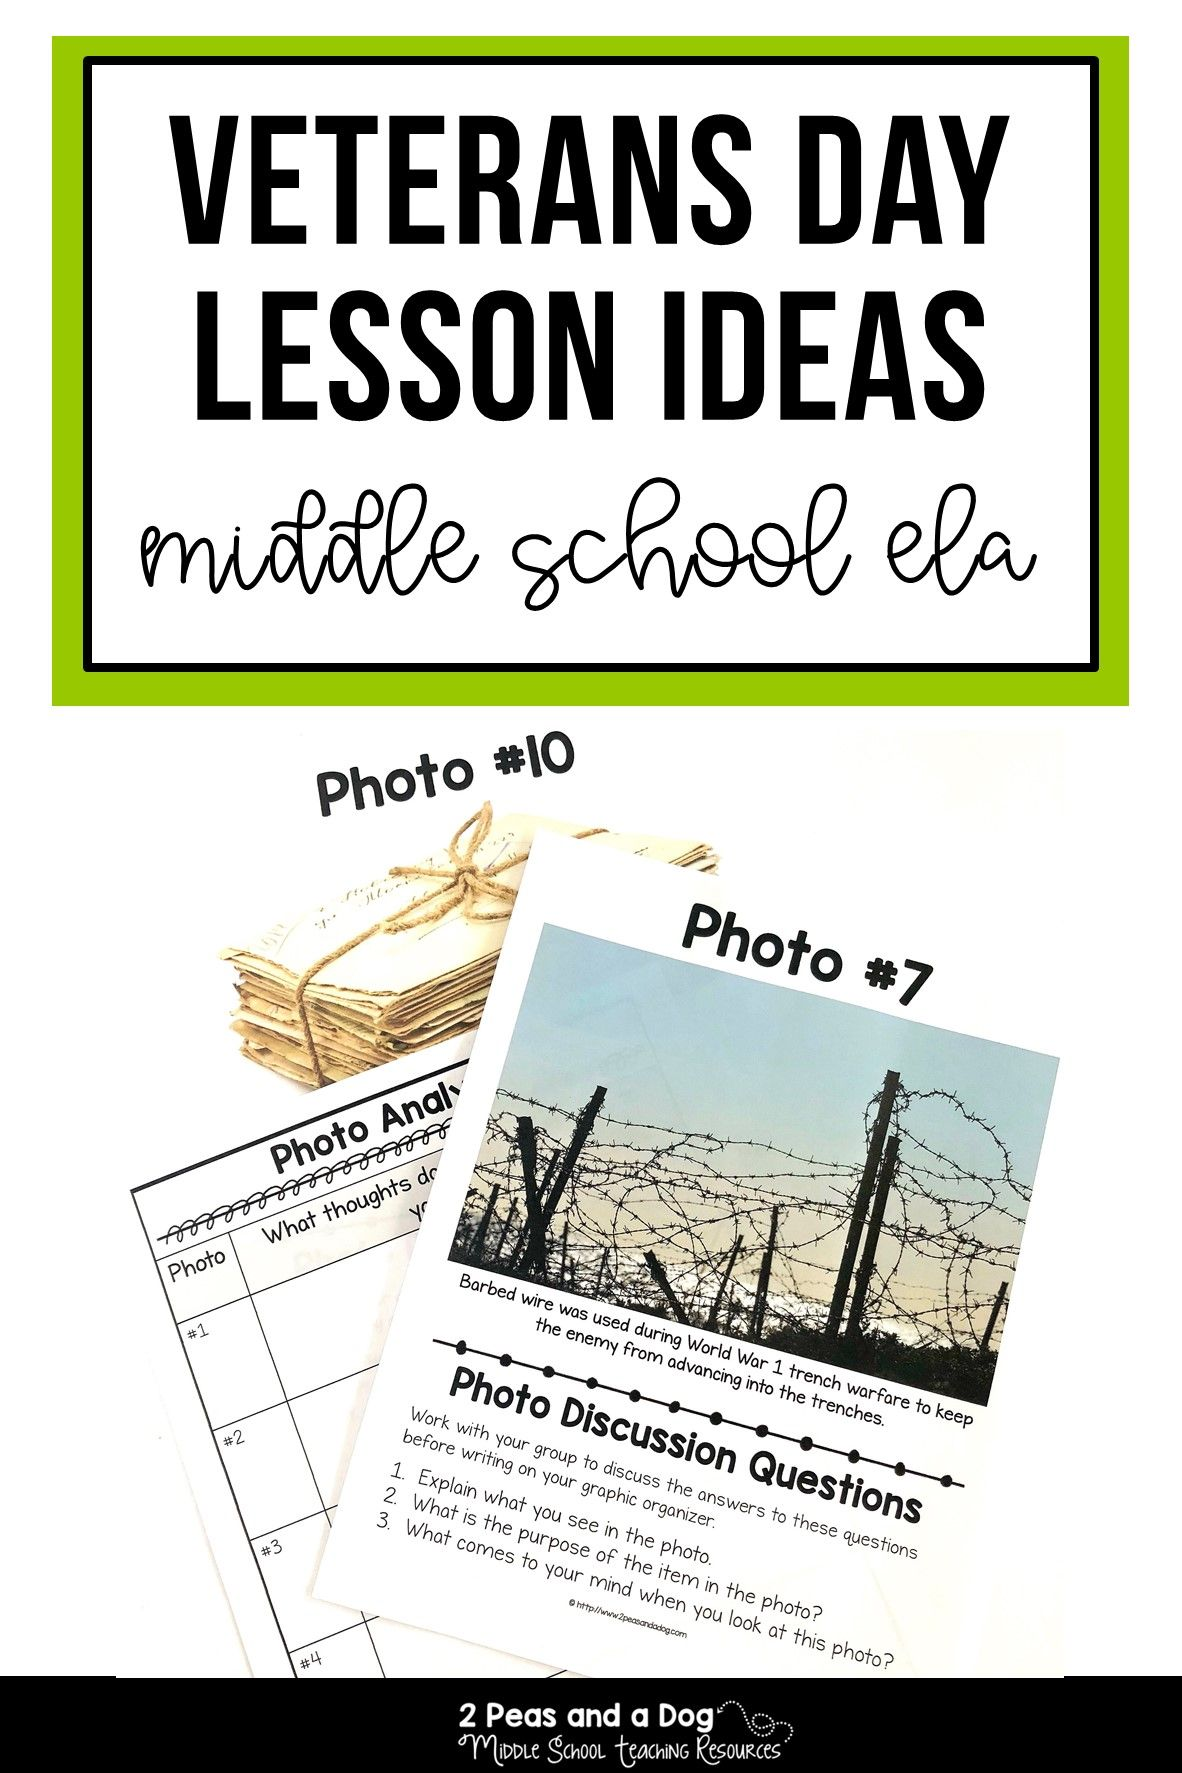 Veterans Day Lesson Plans For Middle School Students With